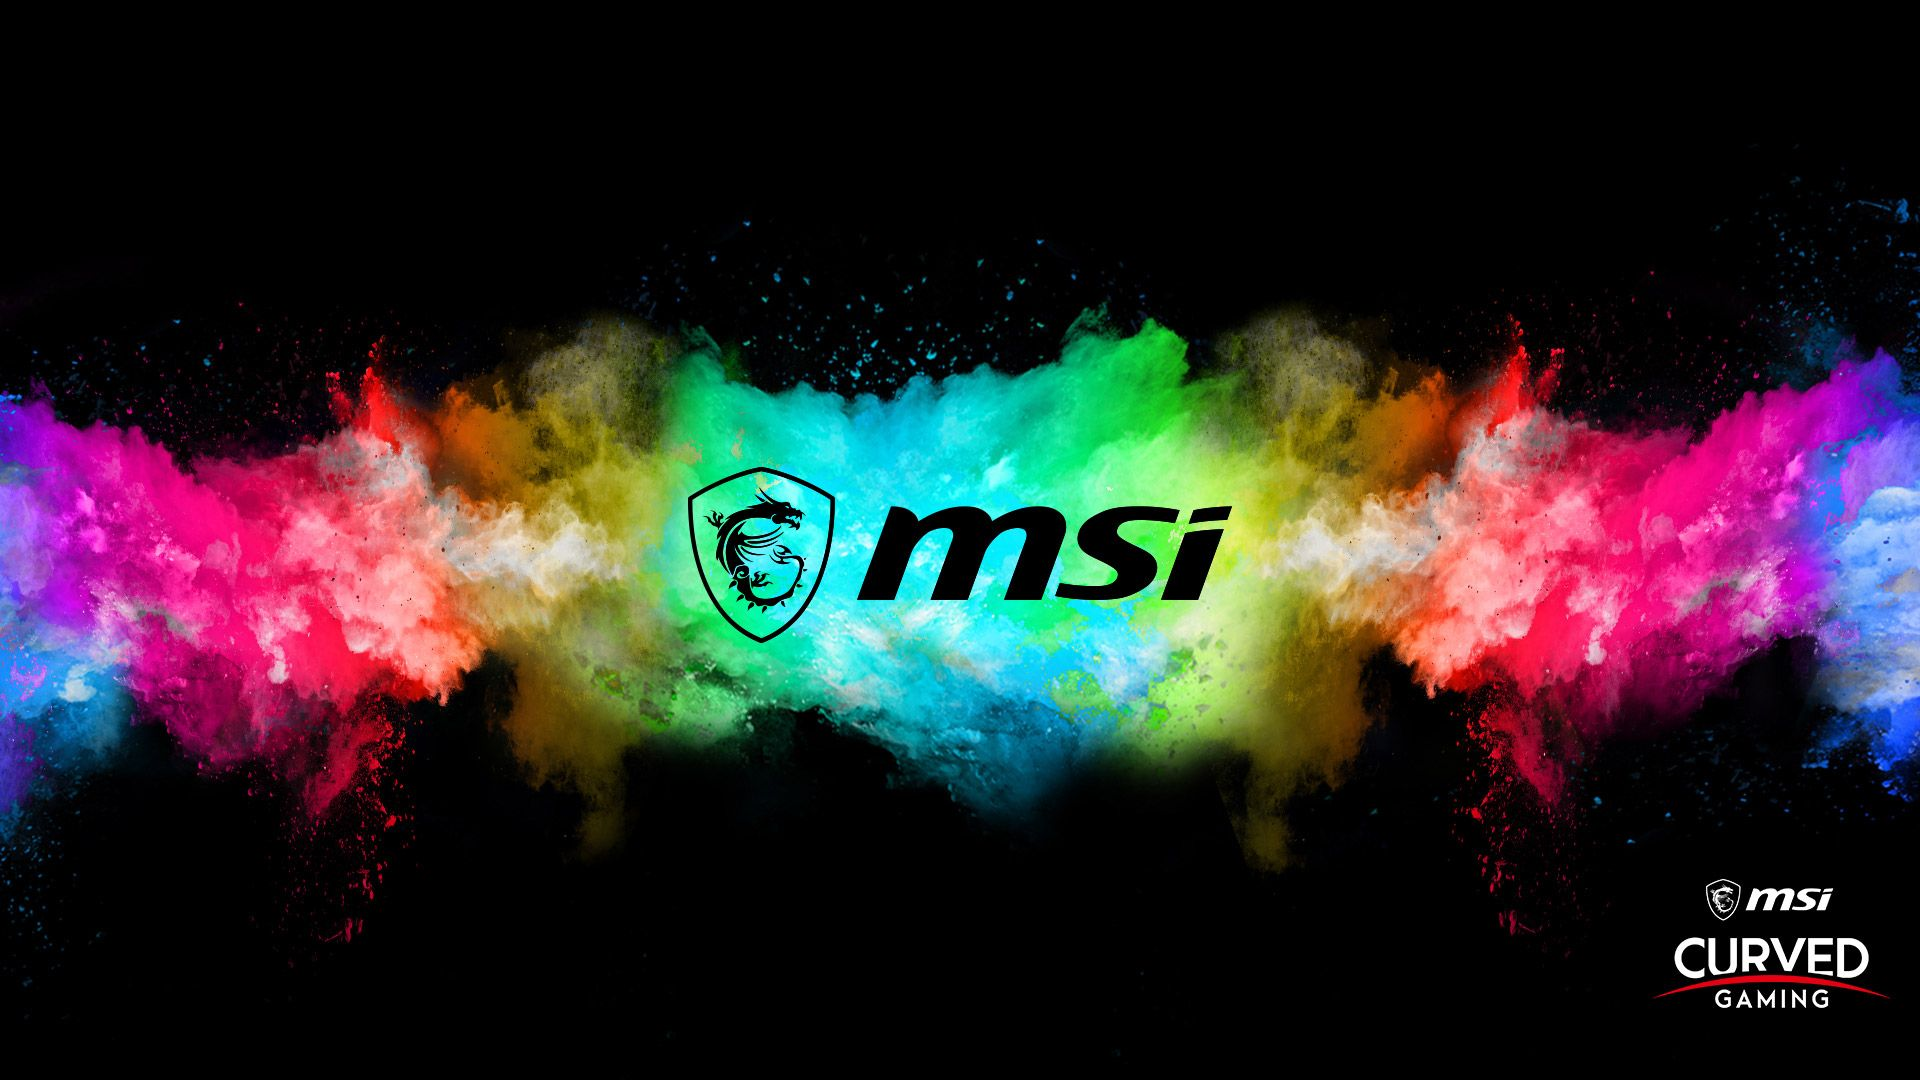 Msi Z270 Gaming Pro Carbon Hd Wallpaper: Top Free MSI RGB Backgrounds